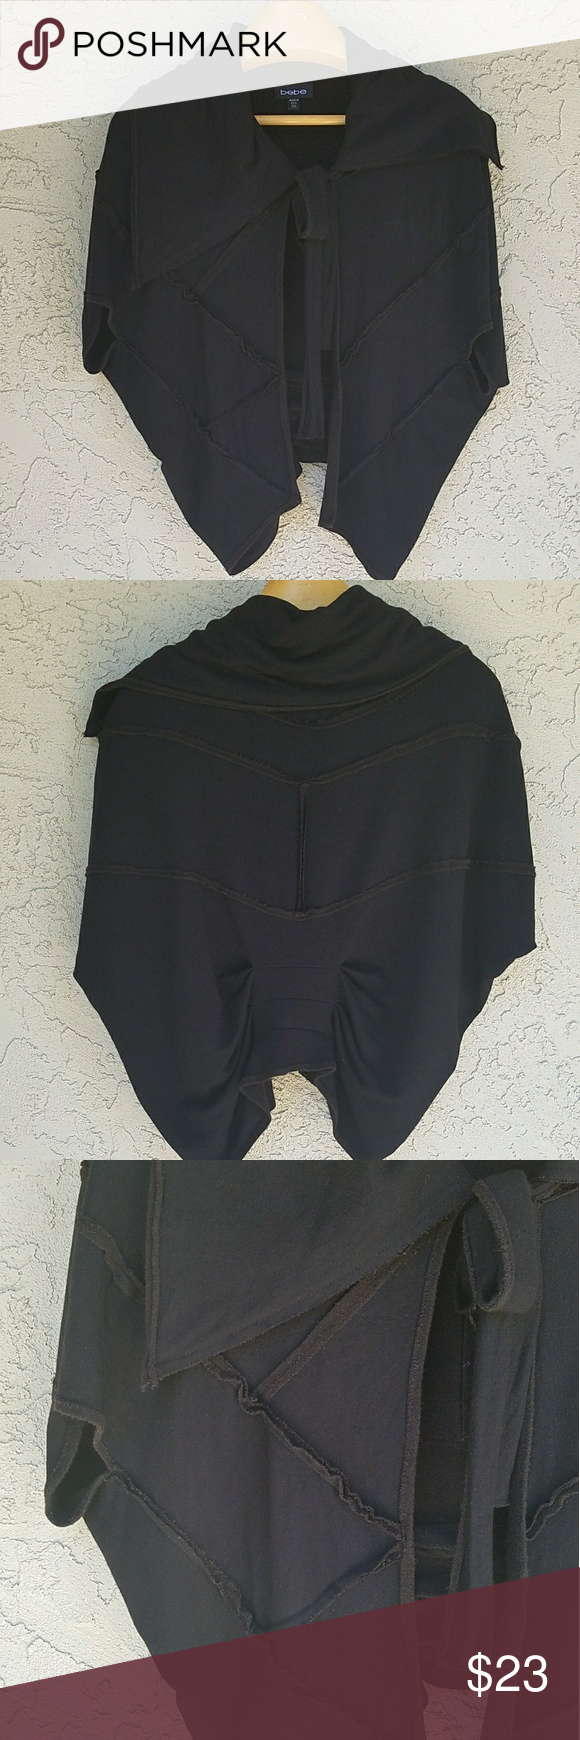 Bebe Black Jersey Cape Jacket Black jersey cape with ruching on back side, neck sash closure and arm holes.  Excellent condition. bebe Jackets & Coats Capes